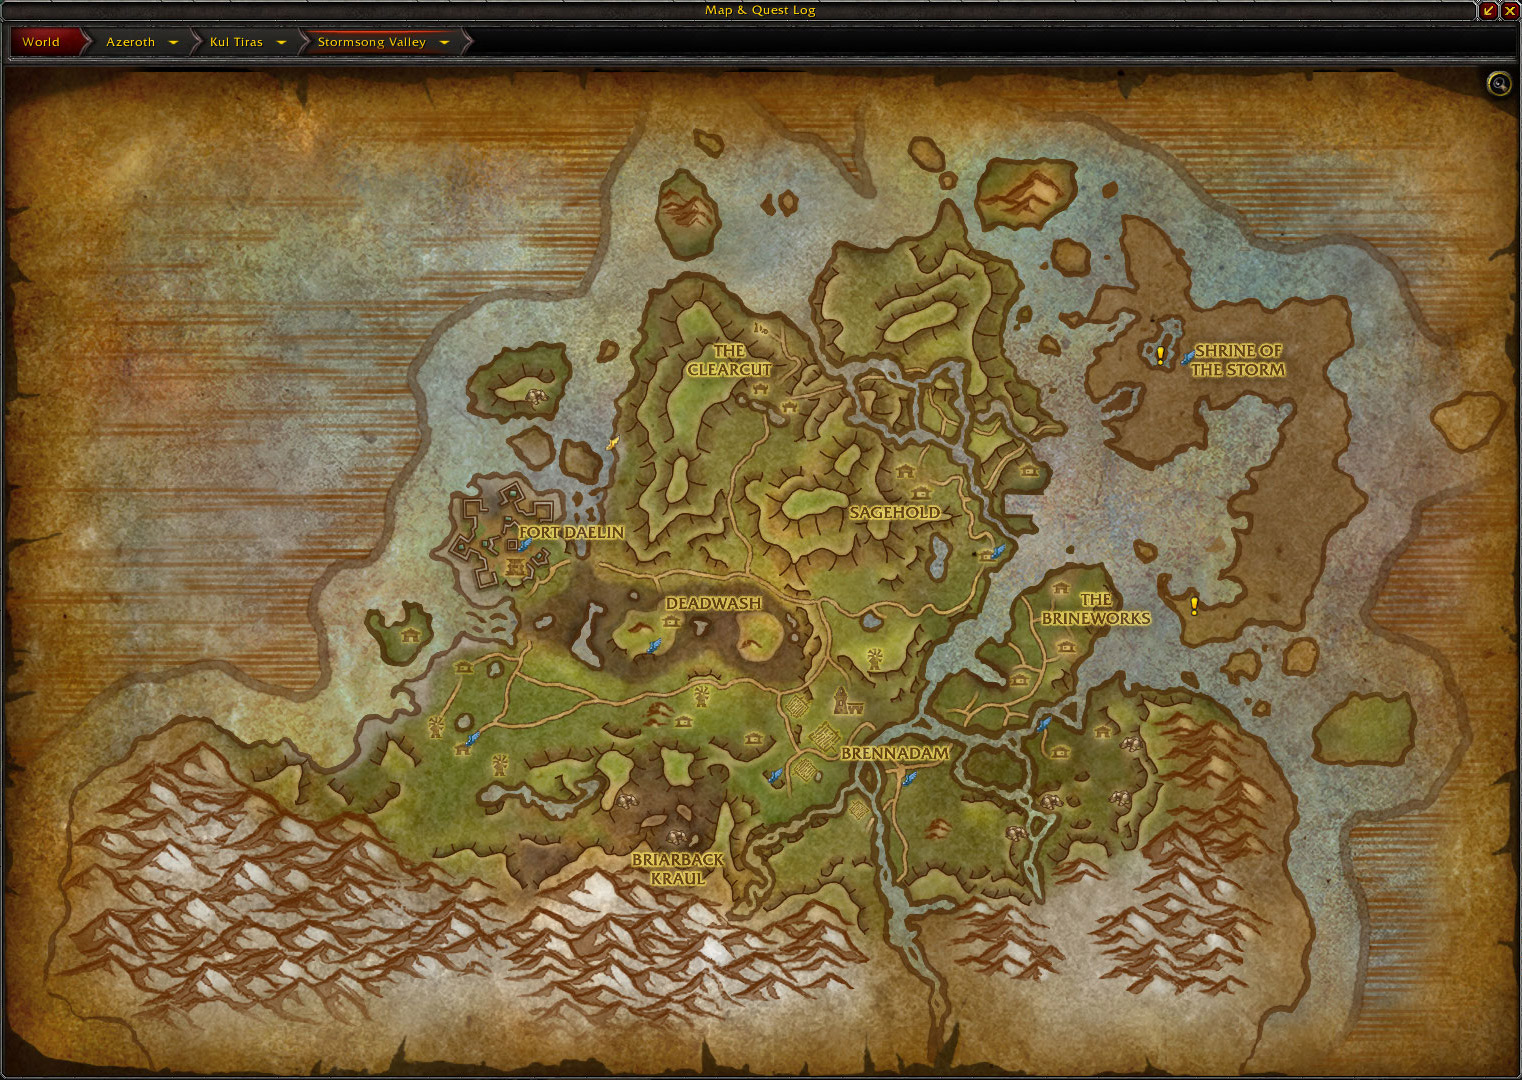 shrine of the storm map blizzplanet warcraft starcraft 2 guide book starcraft 2 guide terran